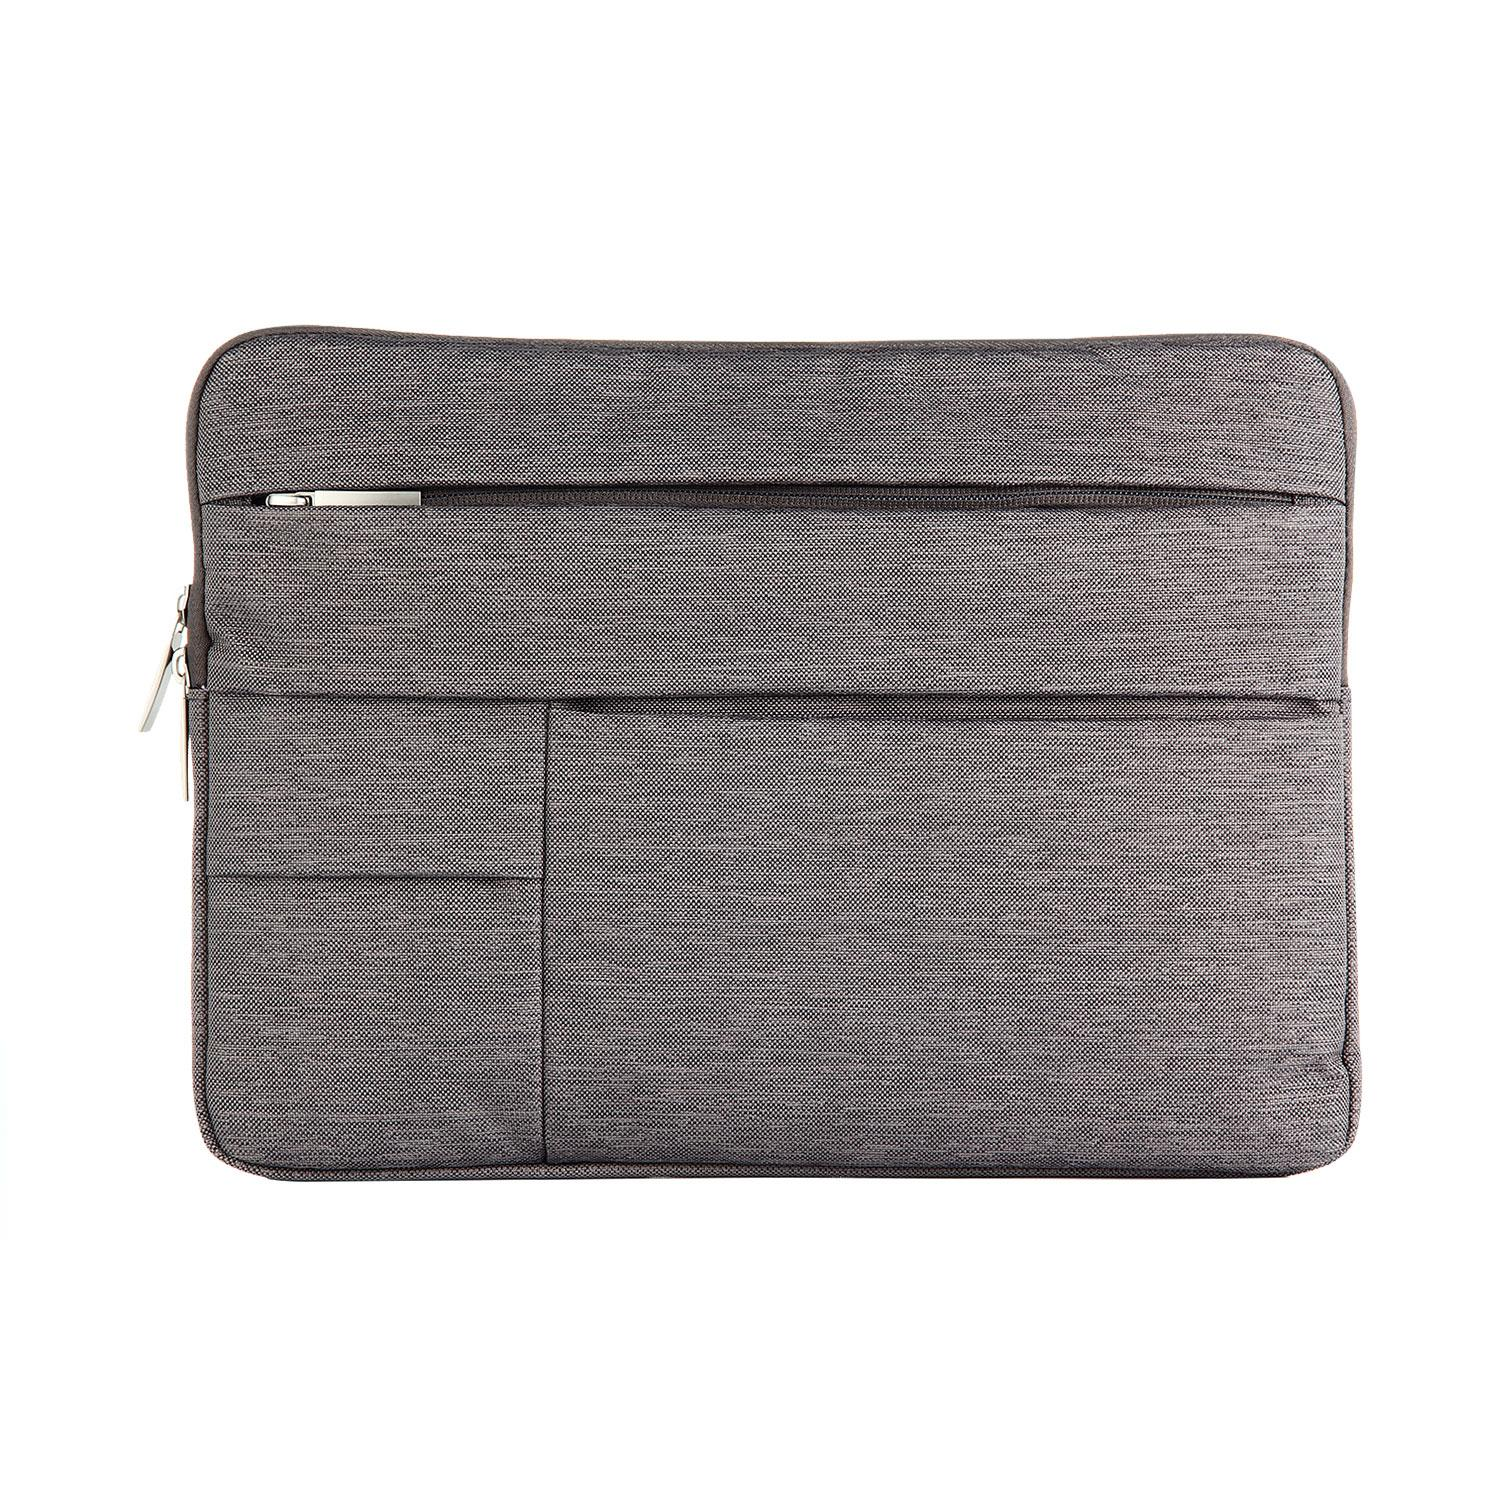 Niceeshop 13.3 Multifunctional Laptop Case Cover Bag Large Capacity Notebook Sleeve Case Pouch - Intl By Nicee Shop.